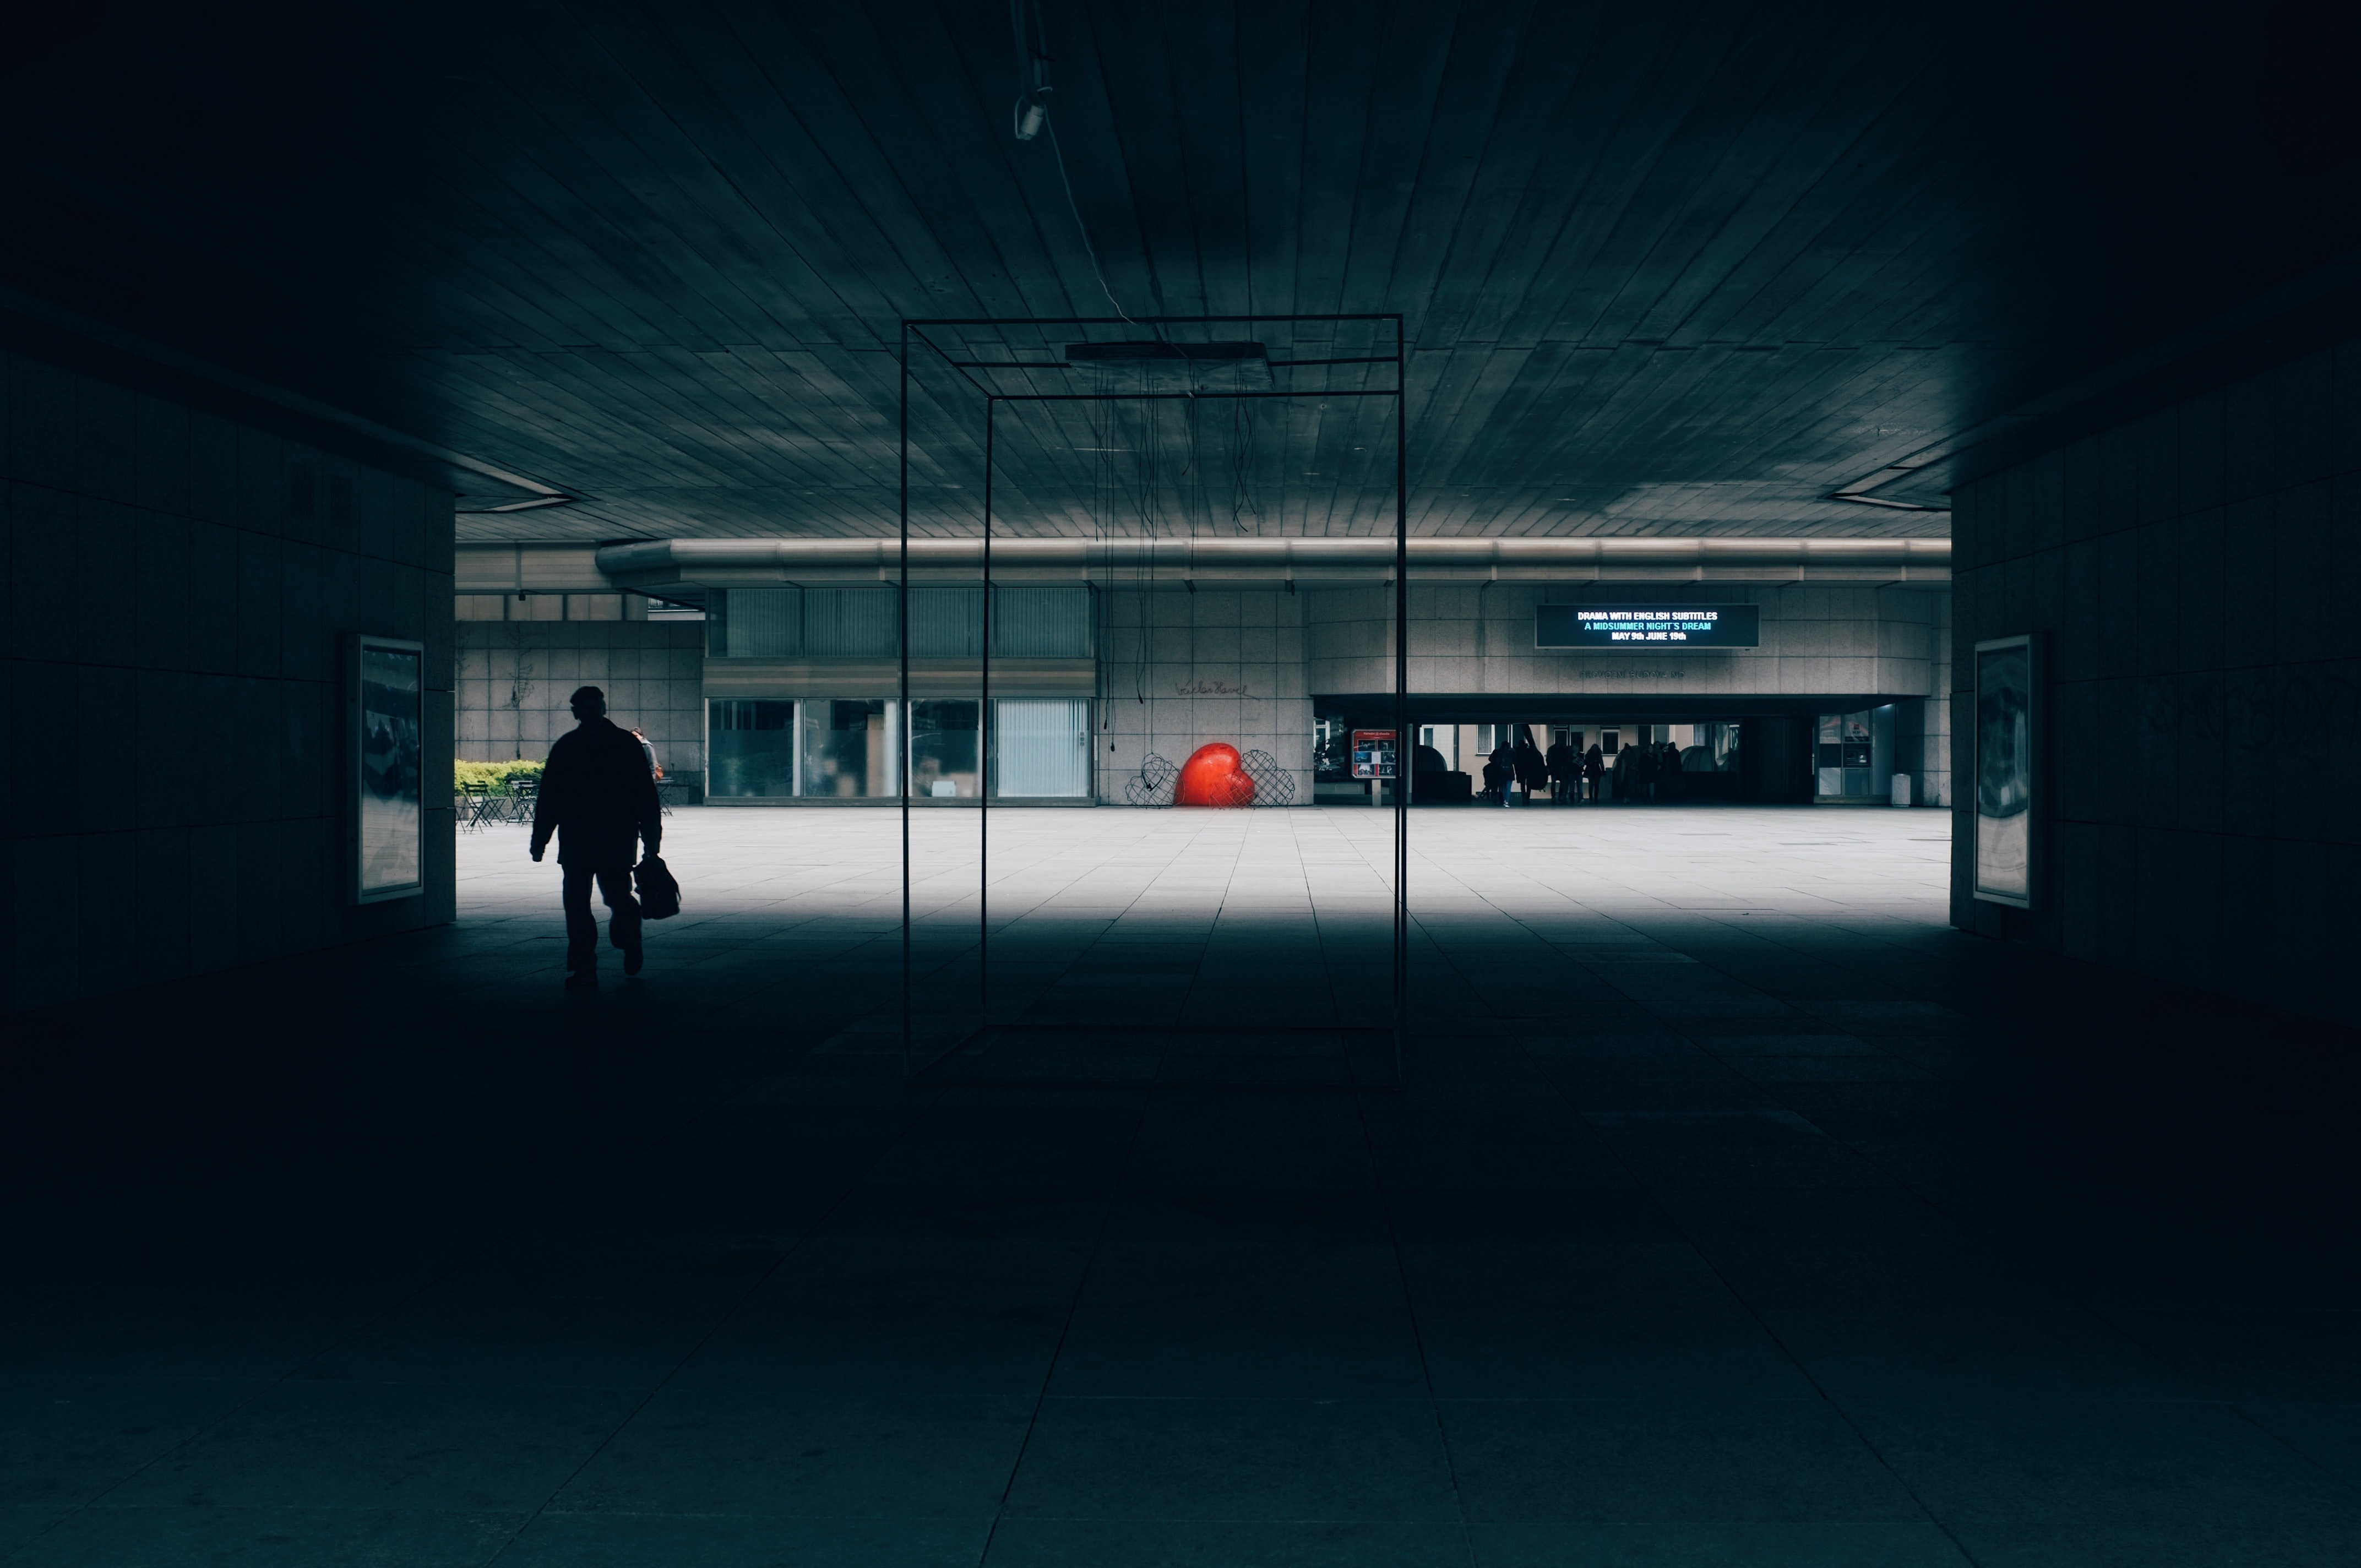 A silhouette of a person in a dimly lit underground passage